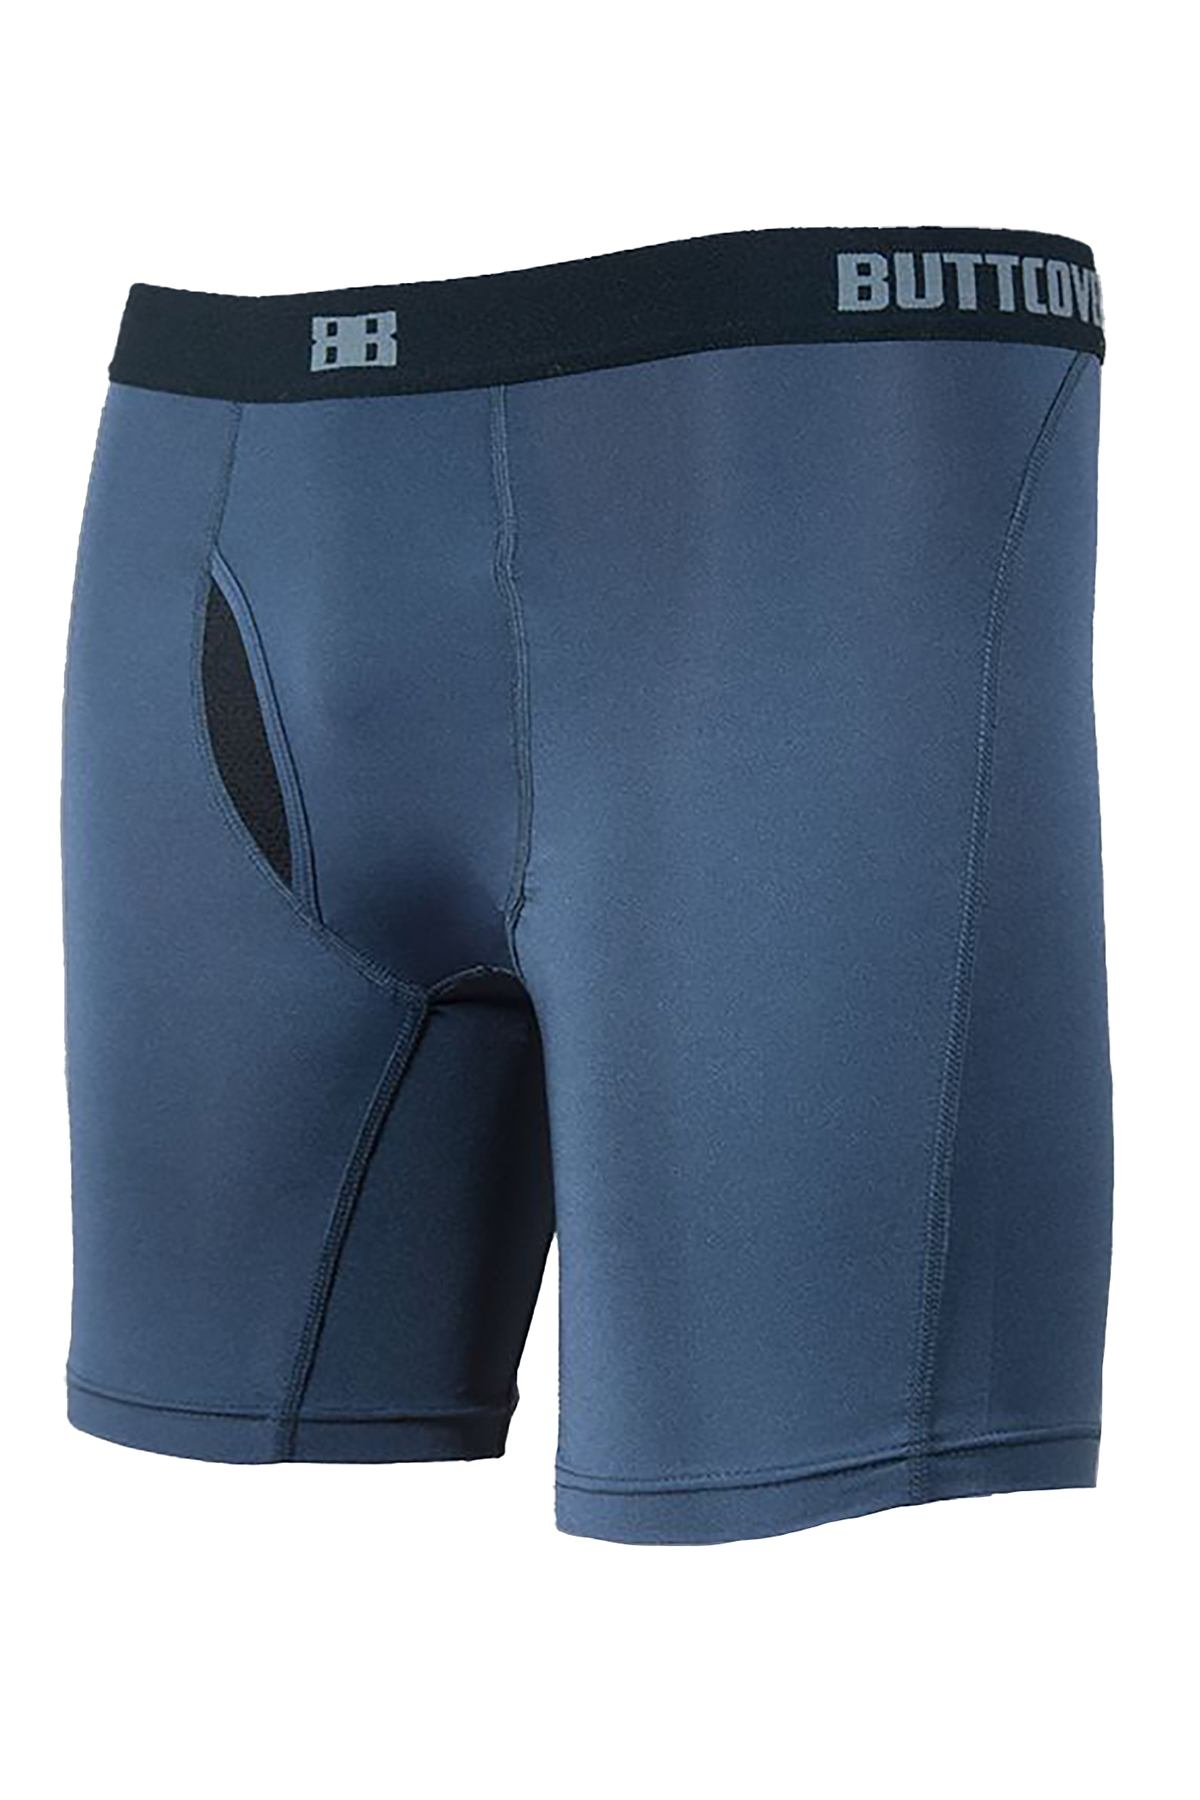 Buttcovers Slate Blue Boxer Brief